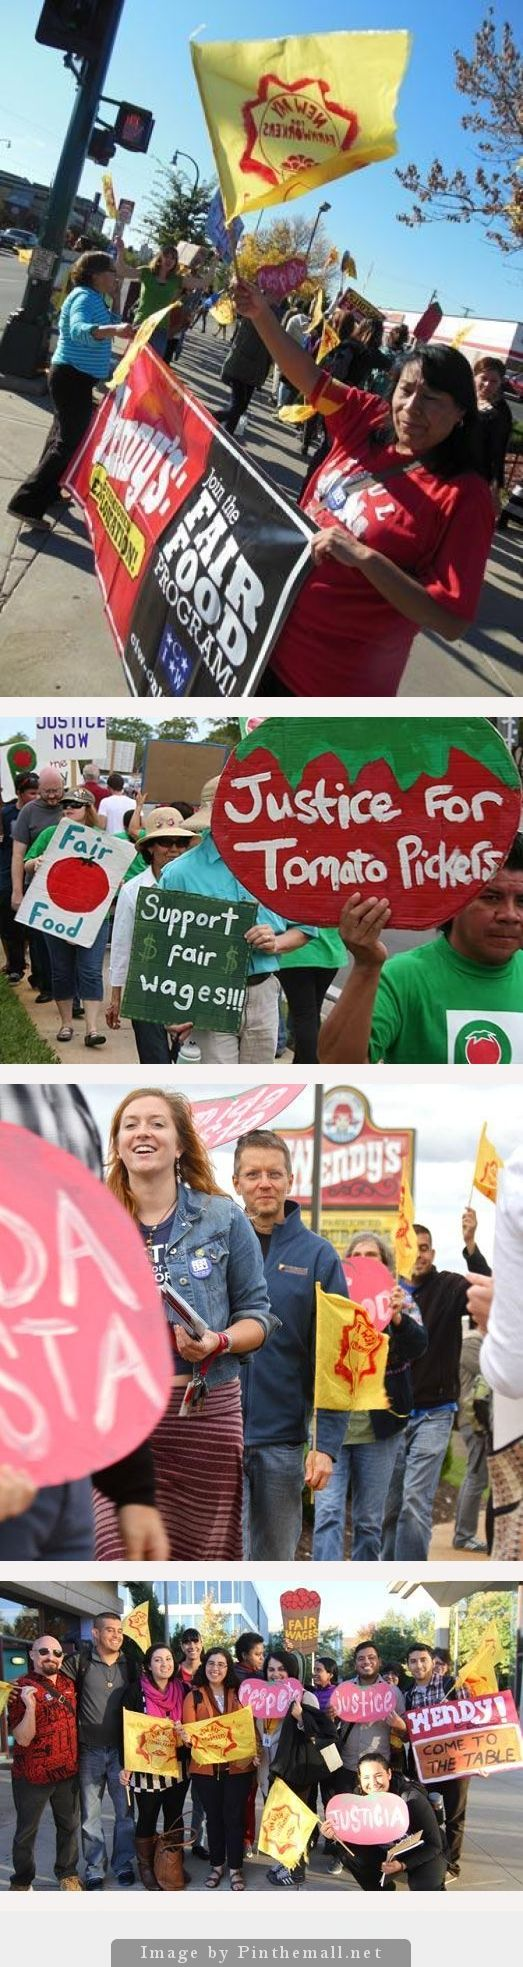 Social and Economic Justice: The Coalition of Immokalee Workers (CIW) is a worker-based human rights organization internationally recognized for its achievements in the fields of corporate social responsibility, community organizing, and sustainable food.